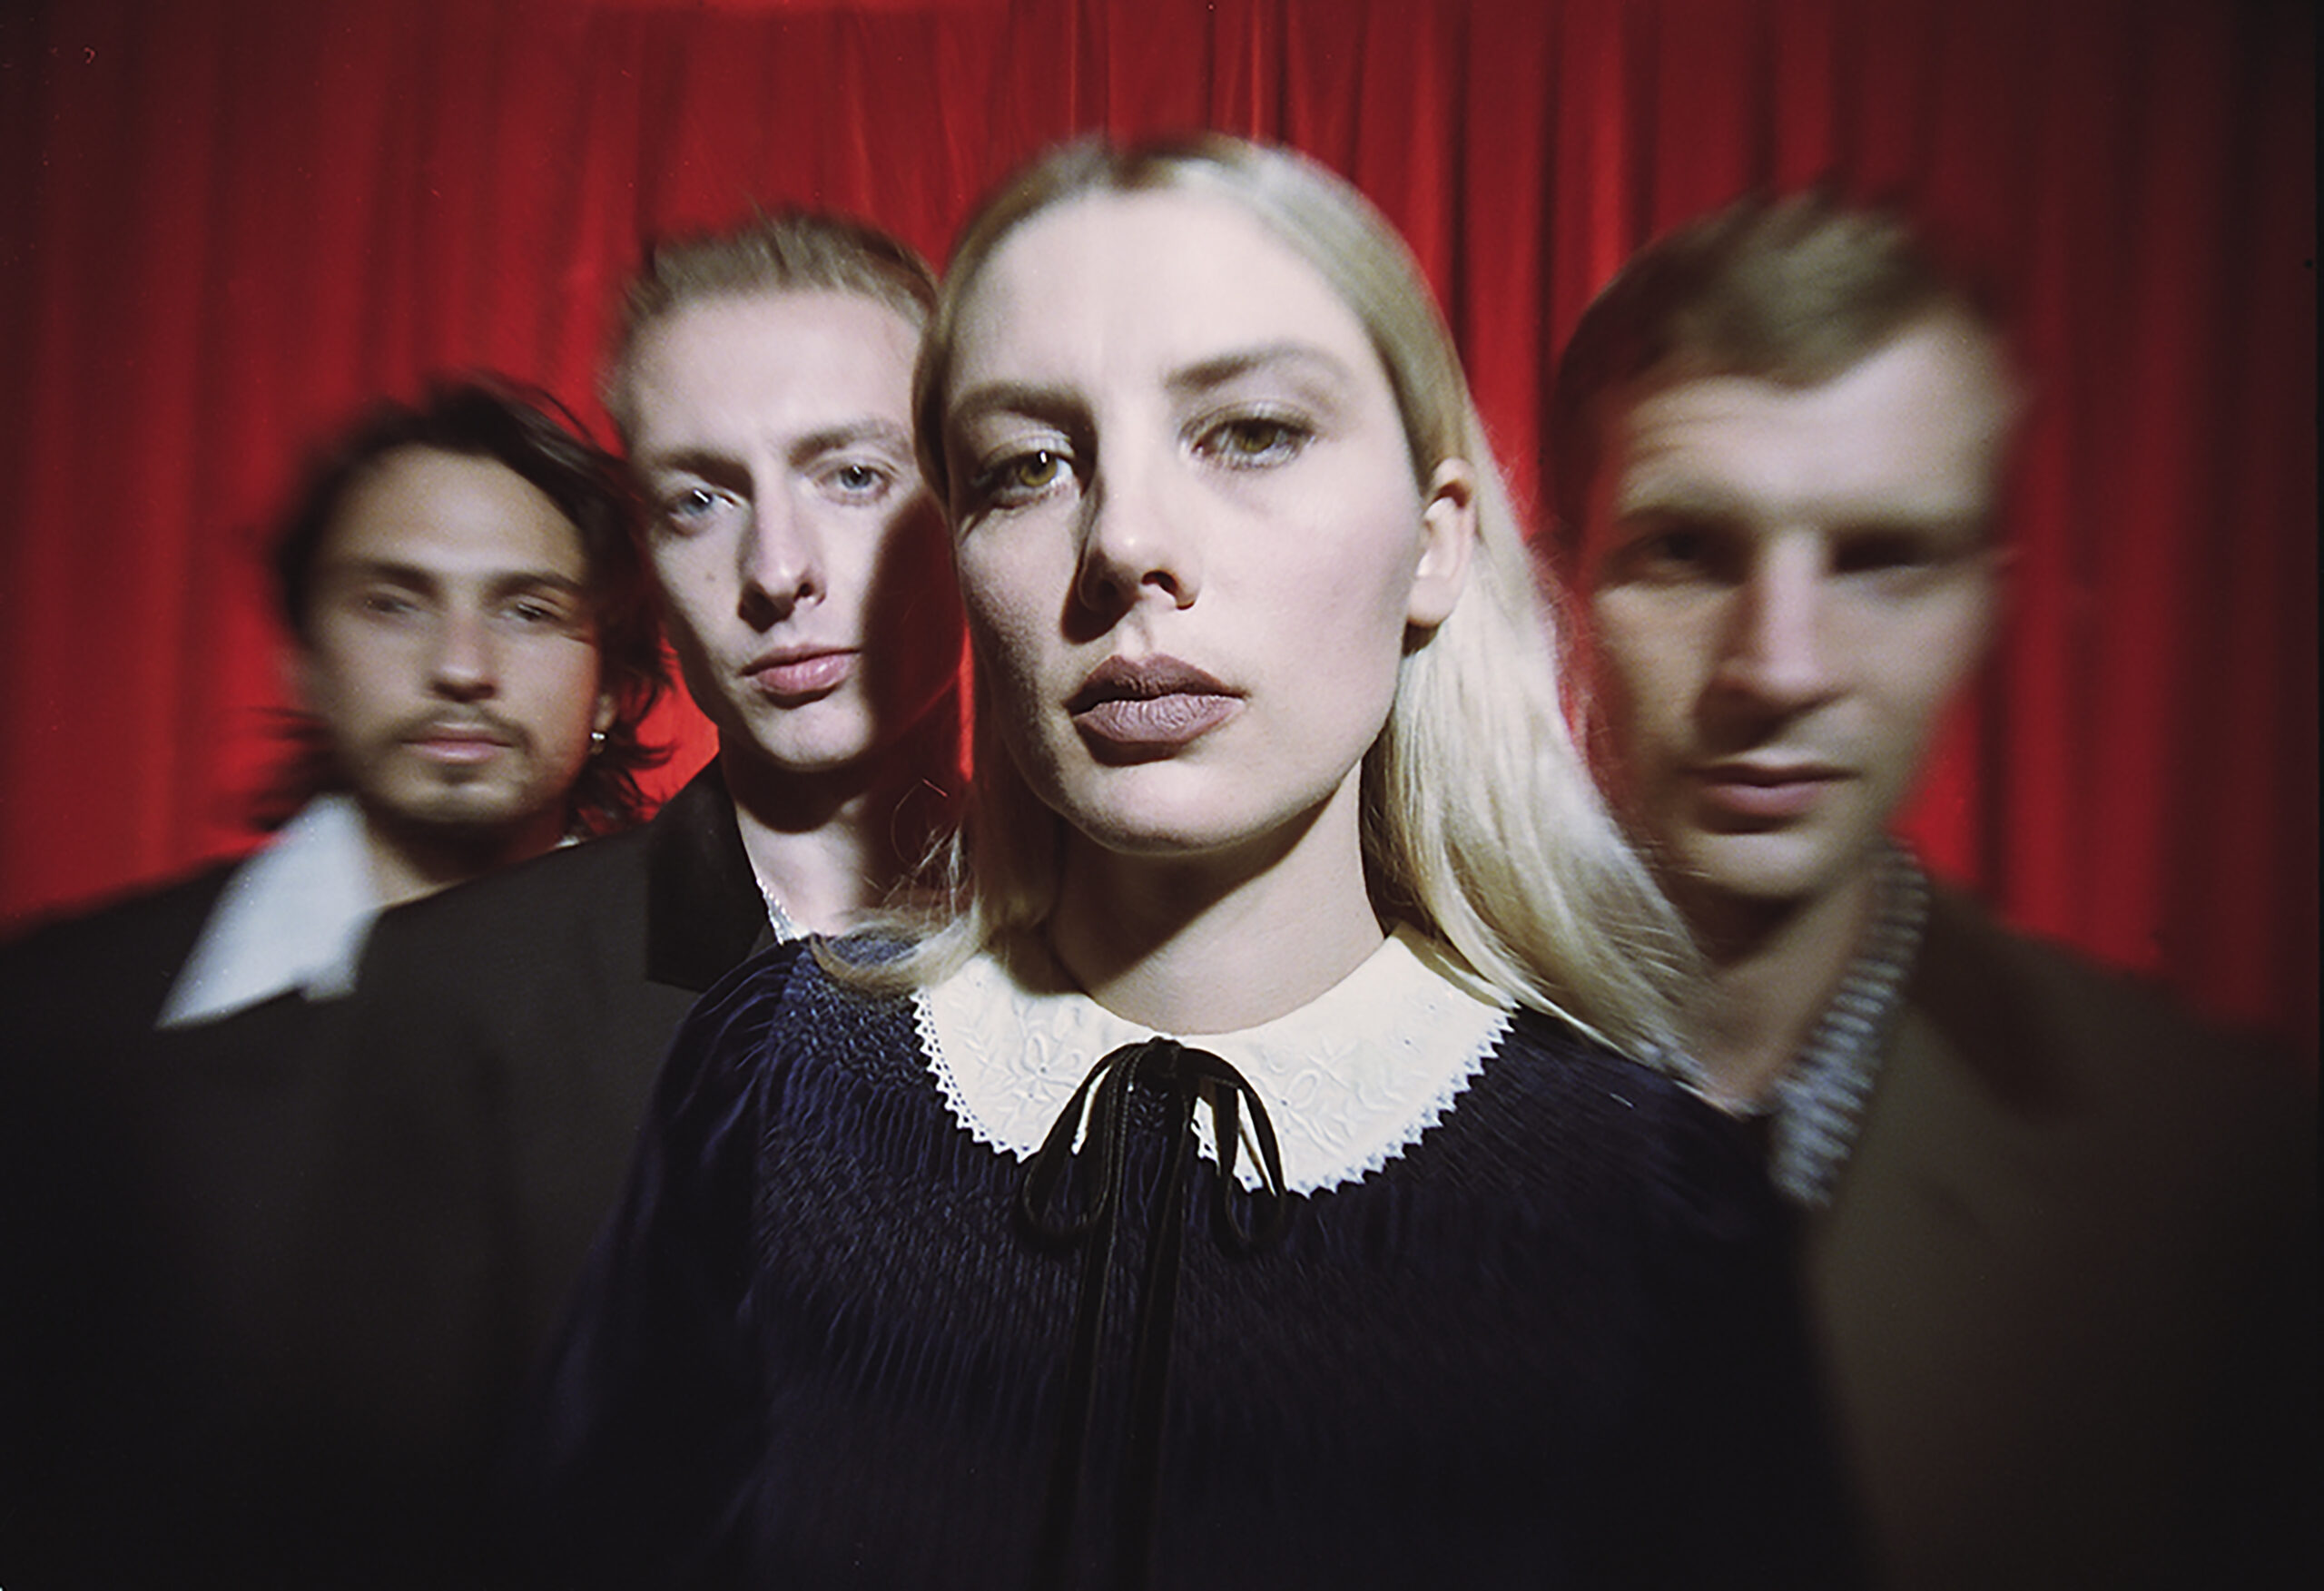 WOLF ALICE RELEASE NEW SINGLE 'SMILE' ALBUM BLUE WEEKEND OUT FRIDAY 11 JUNE 2021